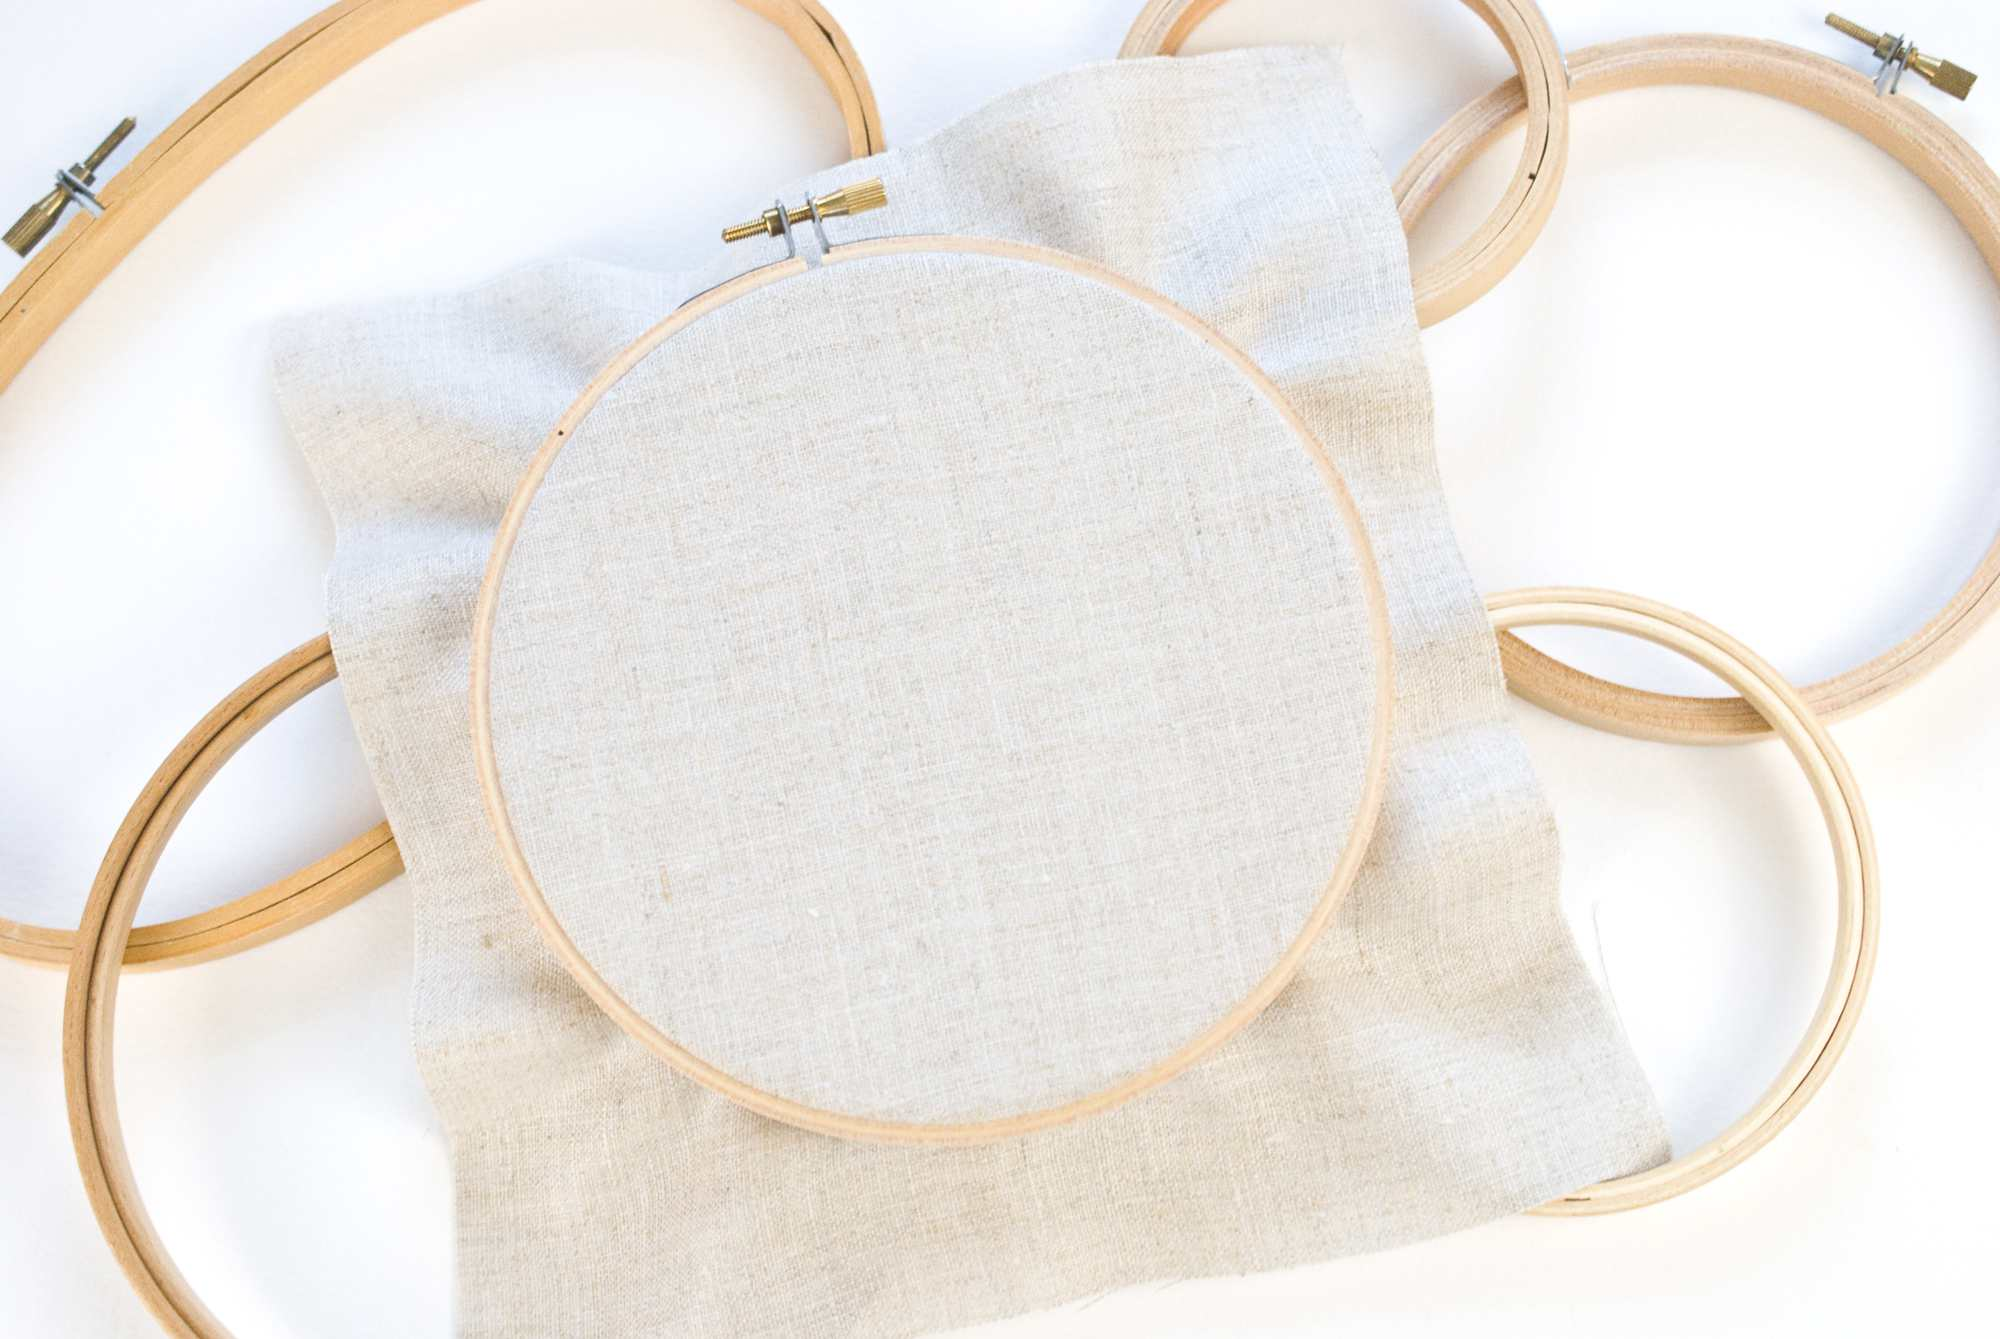 Several embroidery hoops lying on the floor with one holding white fabric.